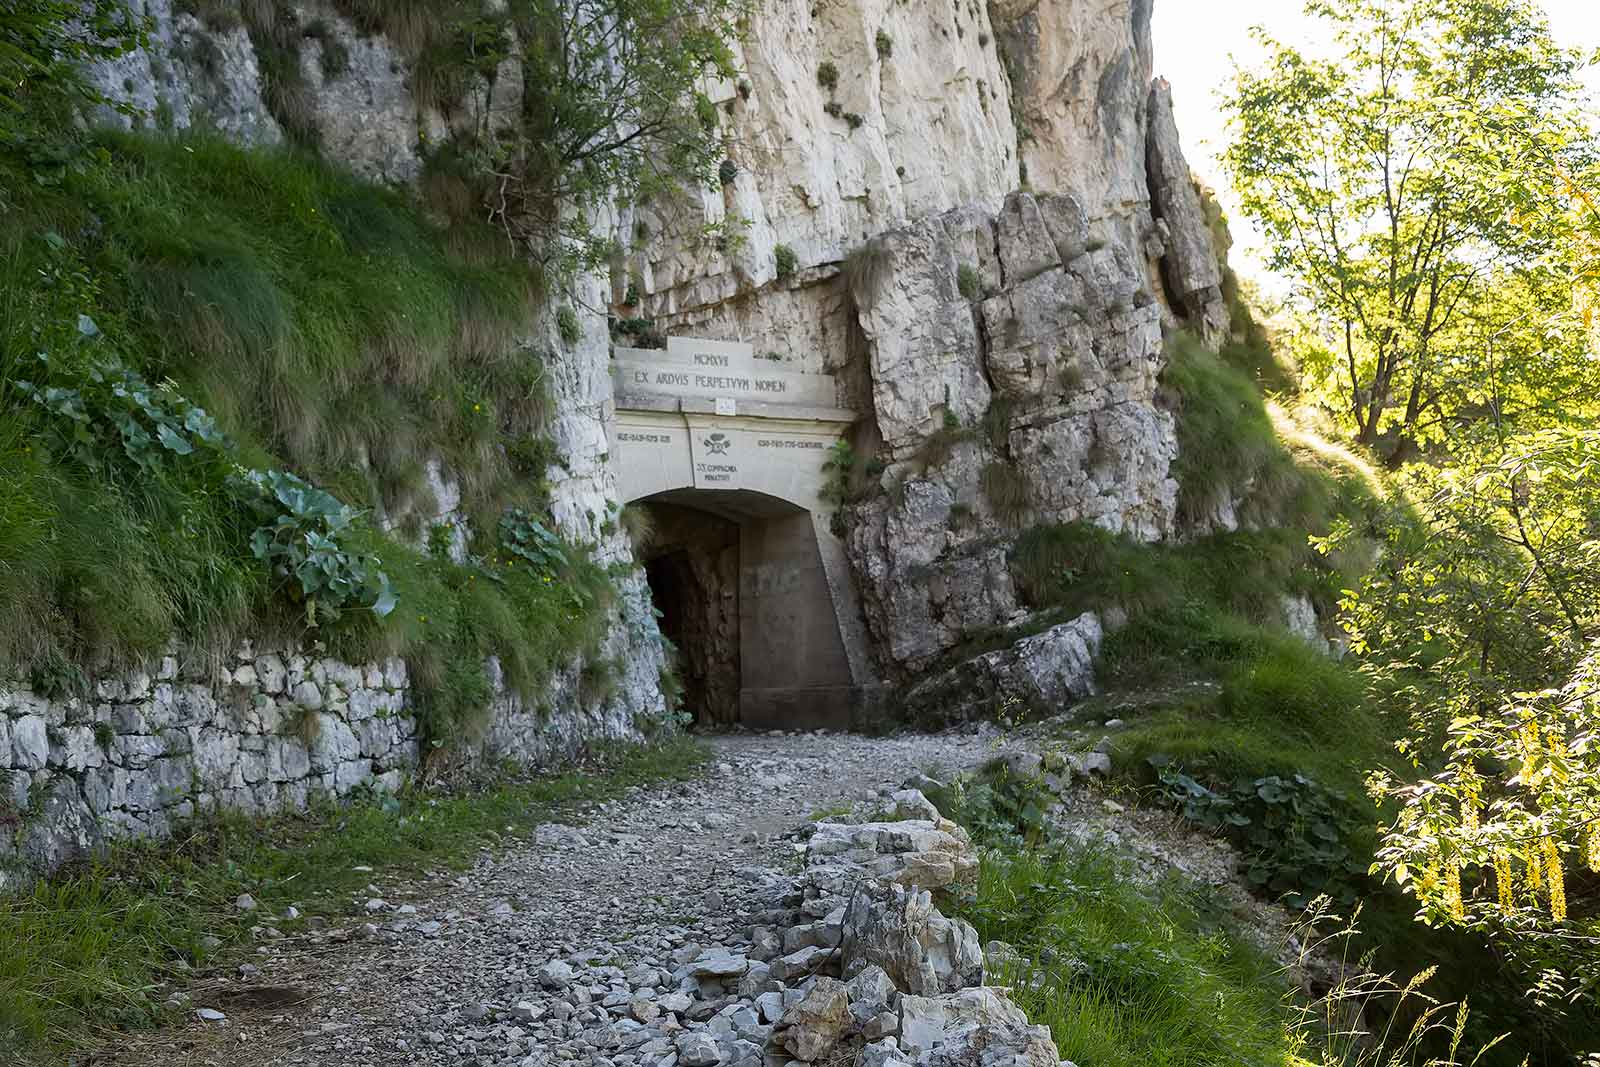 The entrance of tunnel 1.